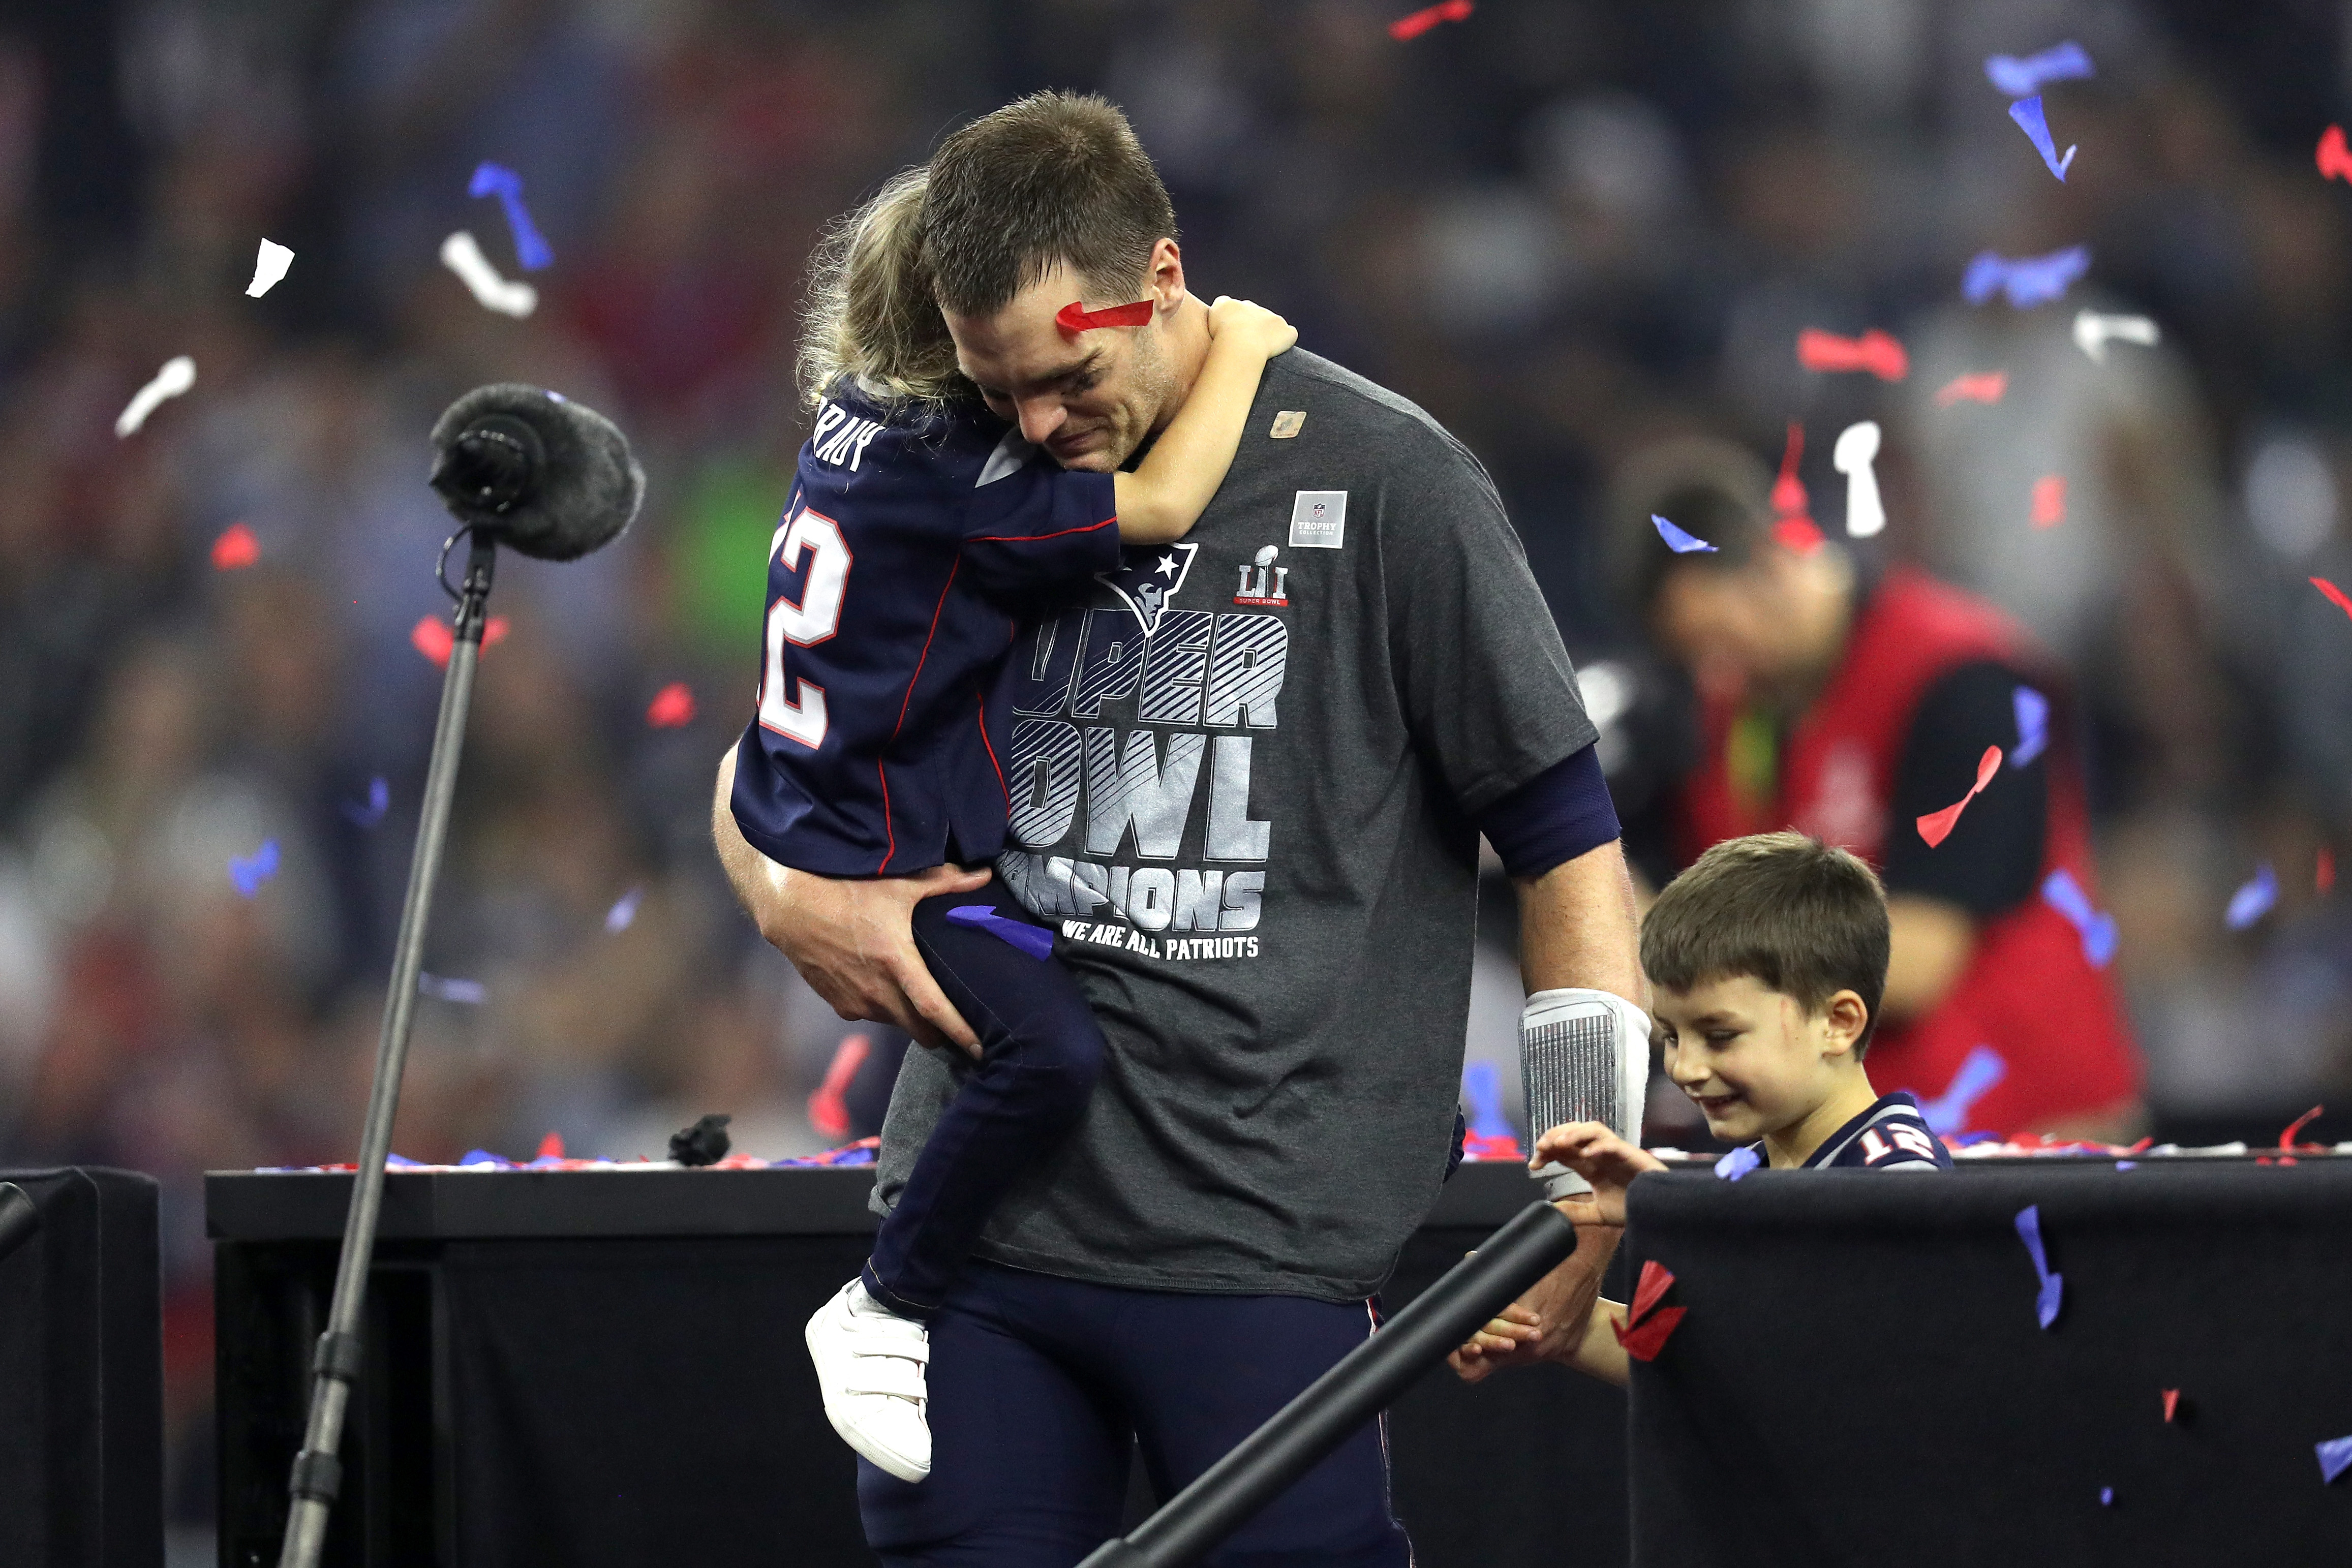 HOUSTON, TX - FEBRUARY 05: Tom Brady #12 of the New England Patriots celebrates with his children after defeating the Atlanta Falcons during Super Bowl 51 at NRG Stadium on February 5, 2017 in Houston, Texas. The Patriots defeated the Falcons 34-28. (Photo by Patrick Smith/Getty Images)